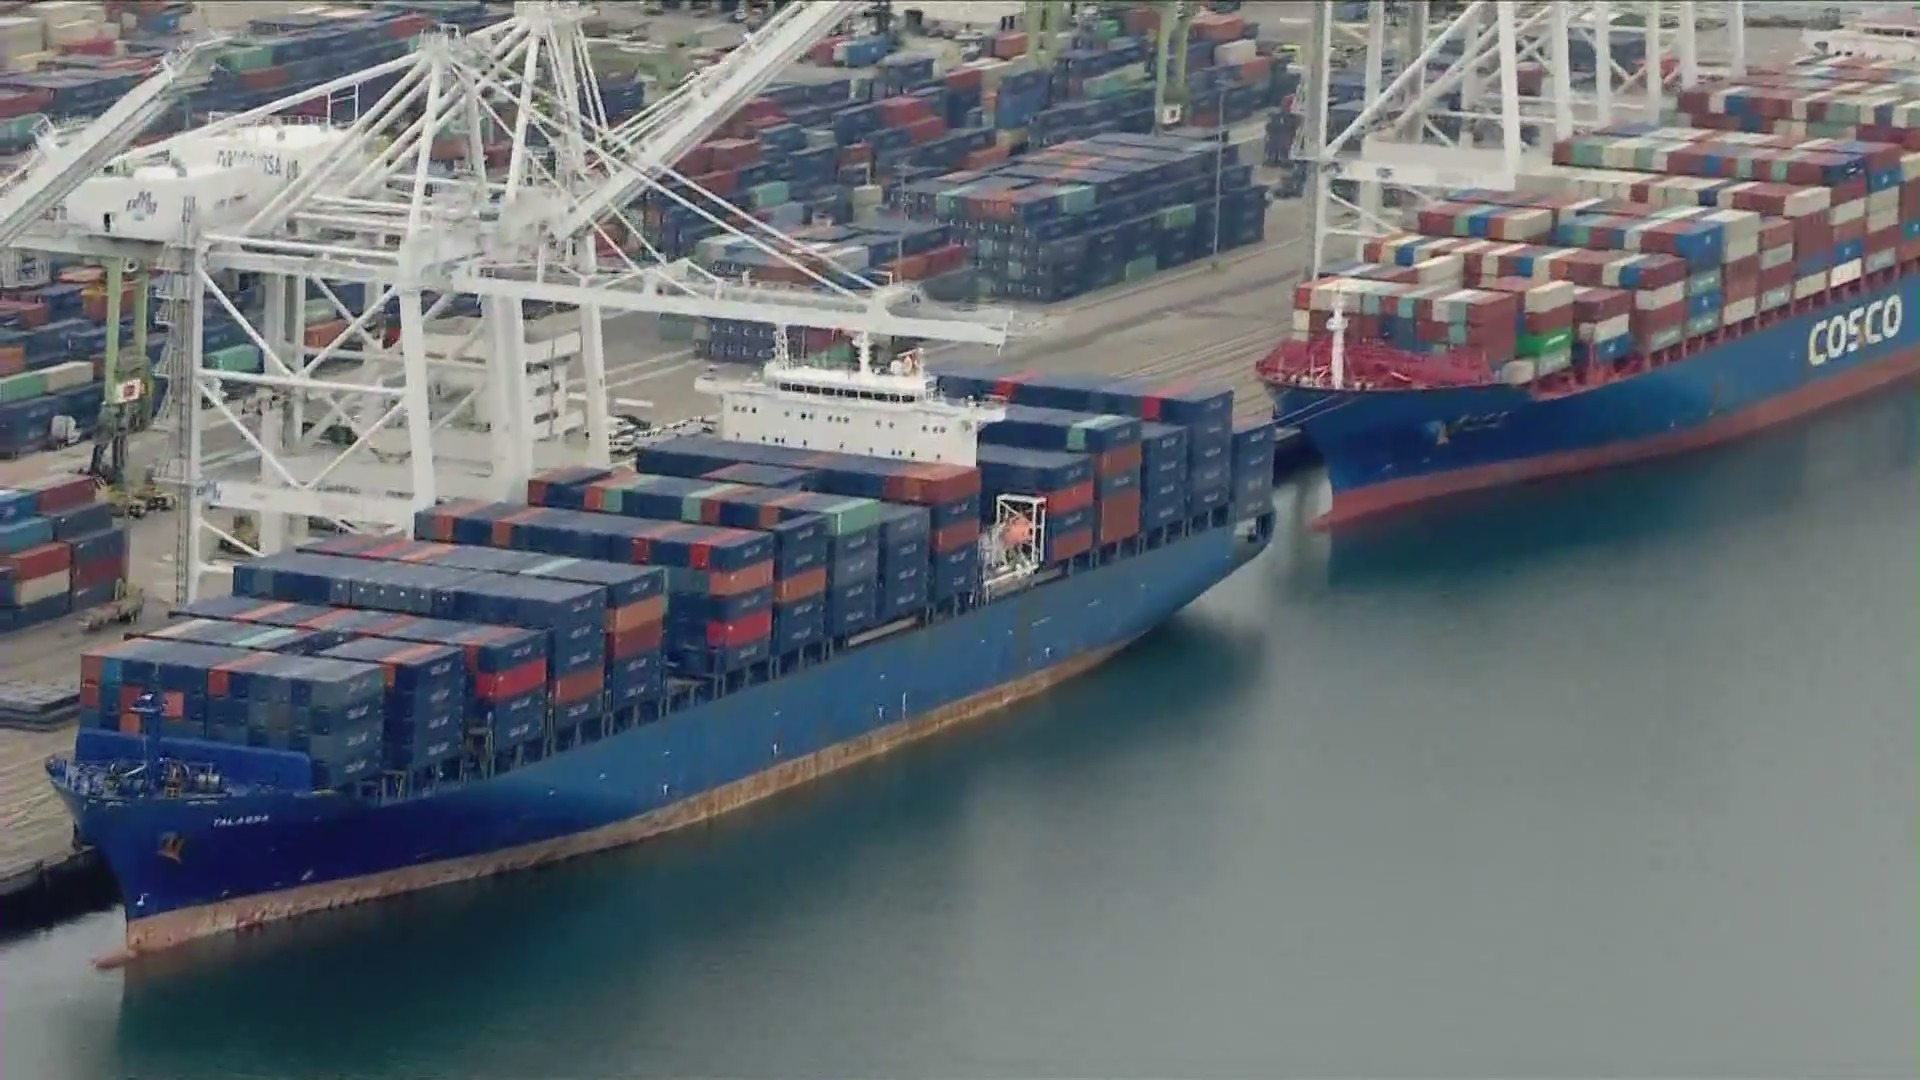 Container ships are seen in the Port of Long Beach in this file image. (KTLA)